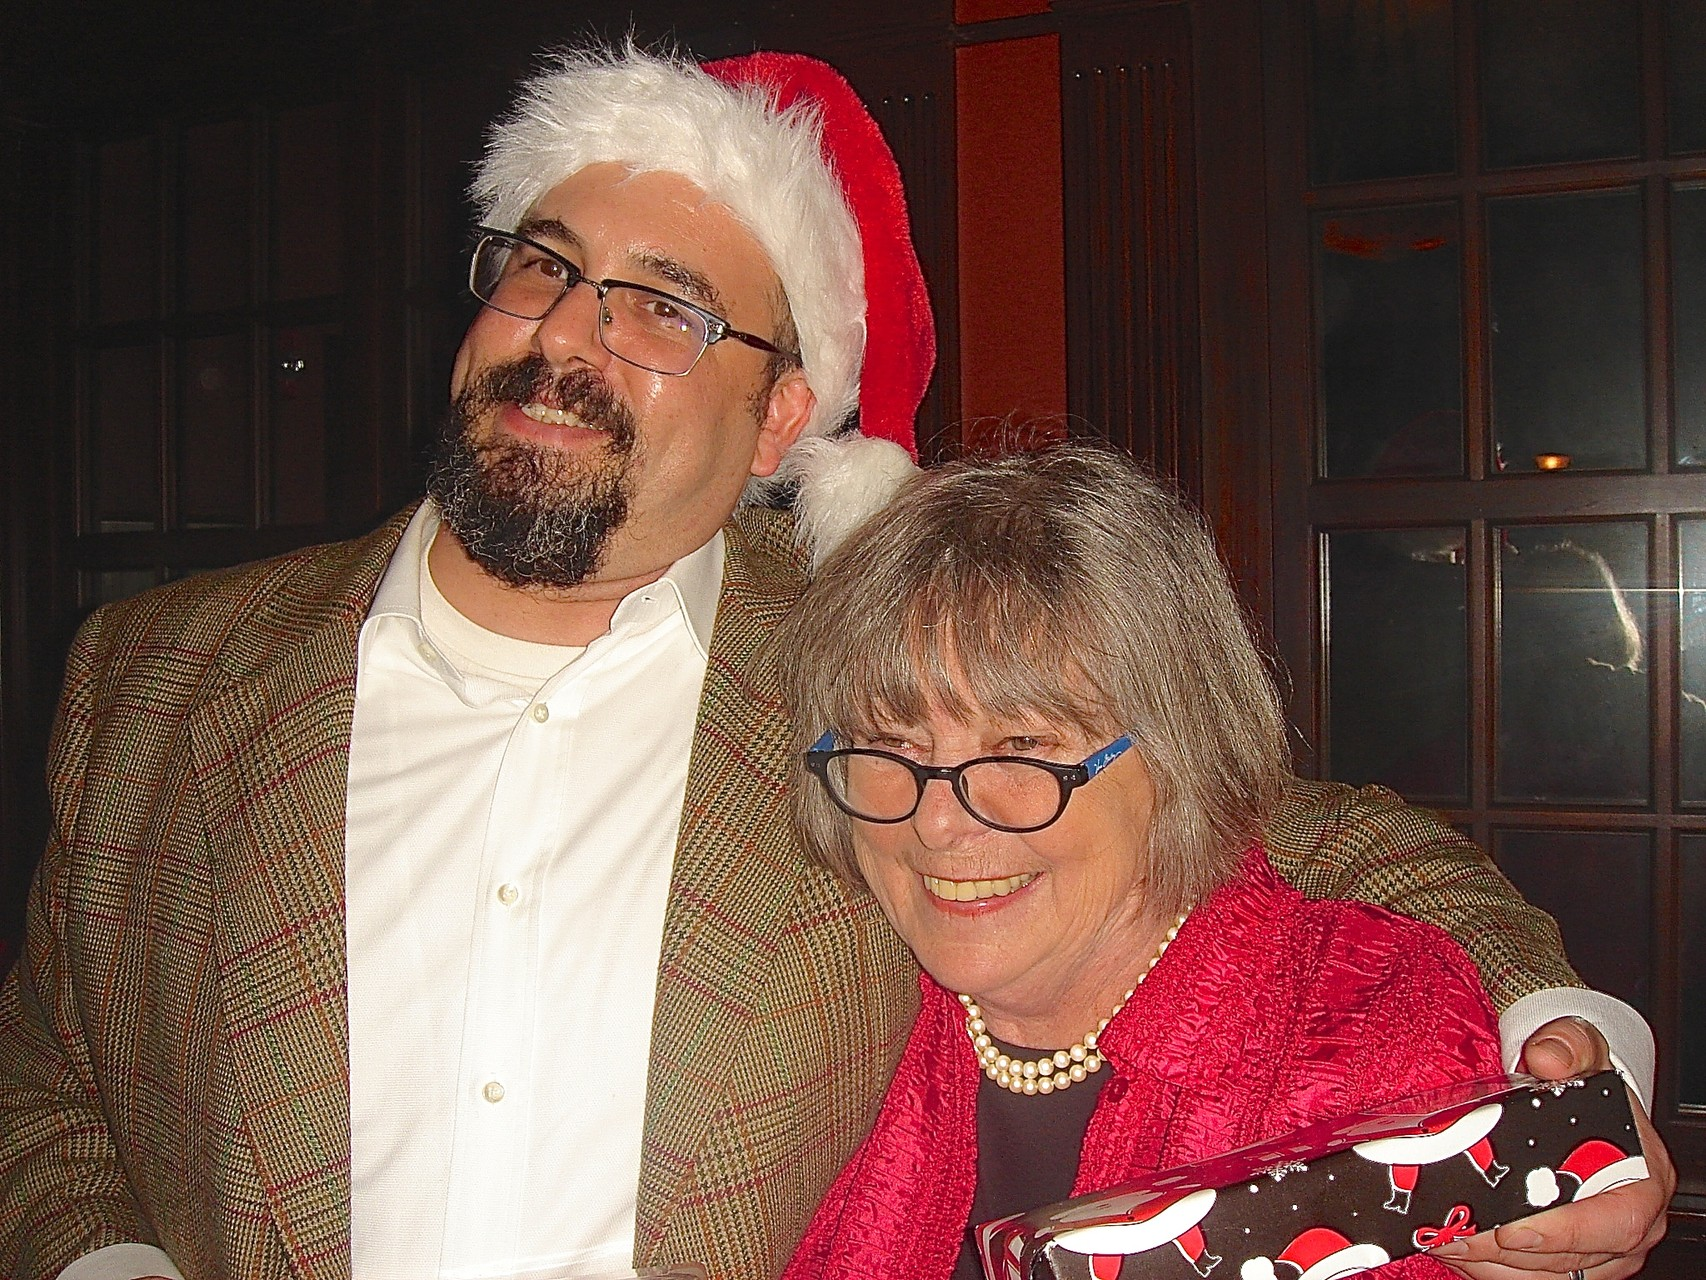 Party at the Old Lyme Inn, Dec. 12, 2015  A Kagel Early Xmas  Colin Cherot & Kathy Hutchins